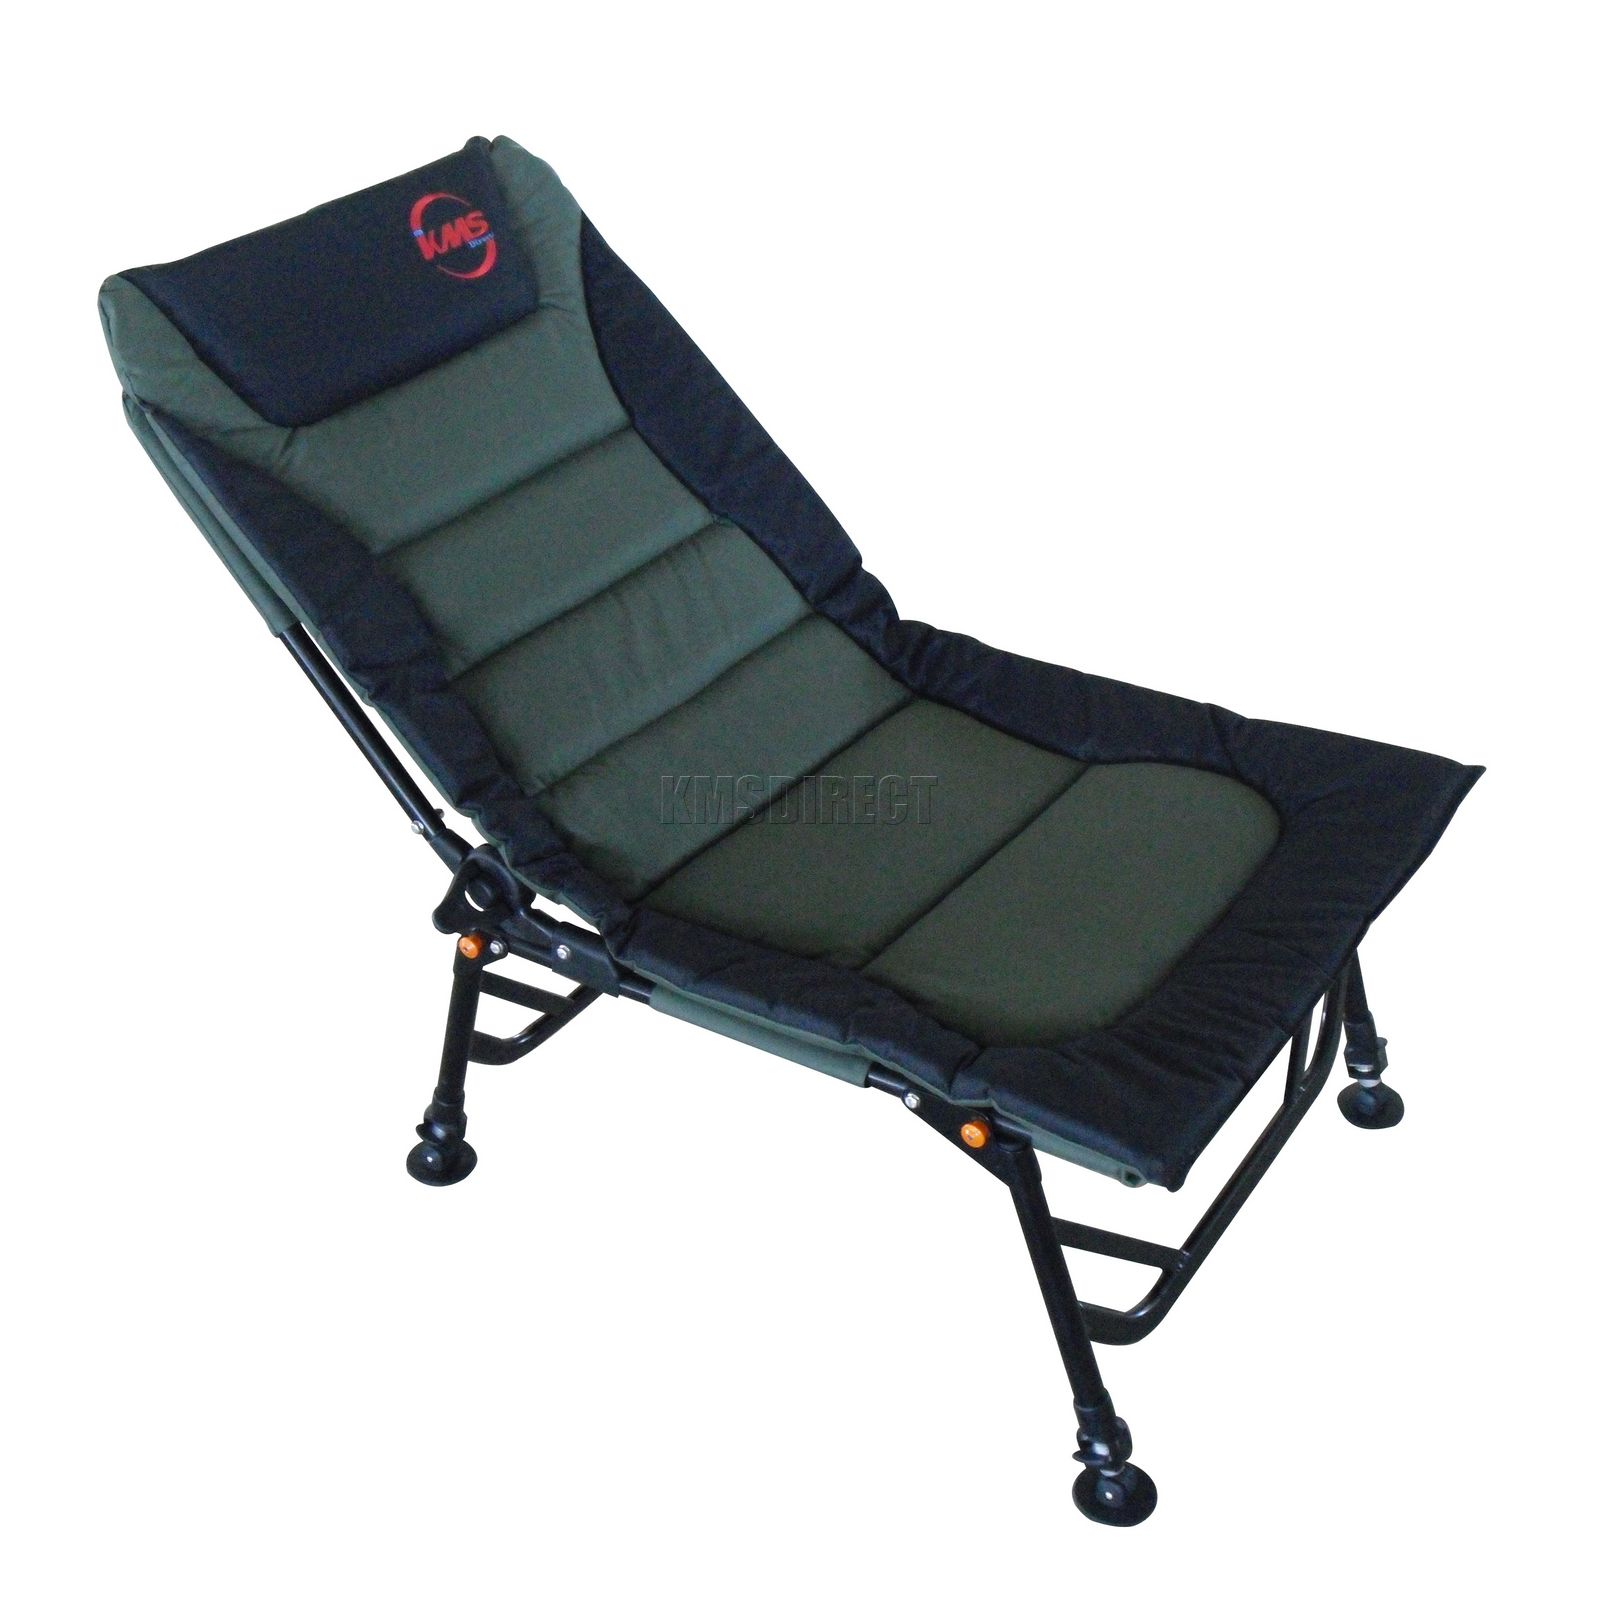 Outdoor Folding Fishing Chair Camping Recliner 4 Adjustable Legs XL Dark Gree